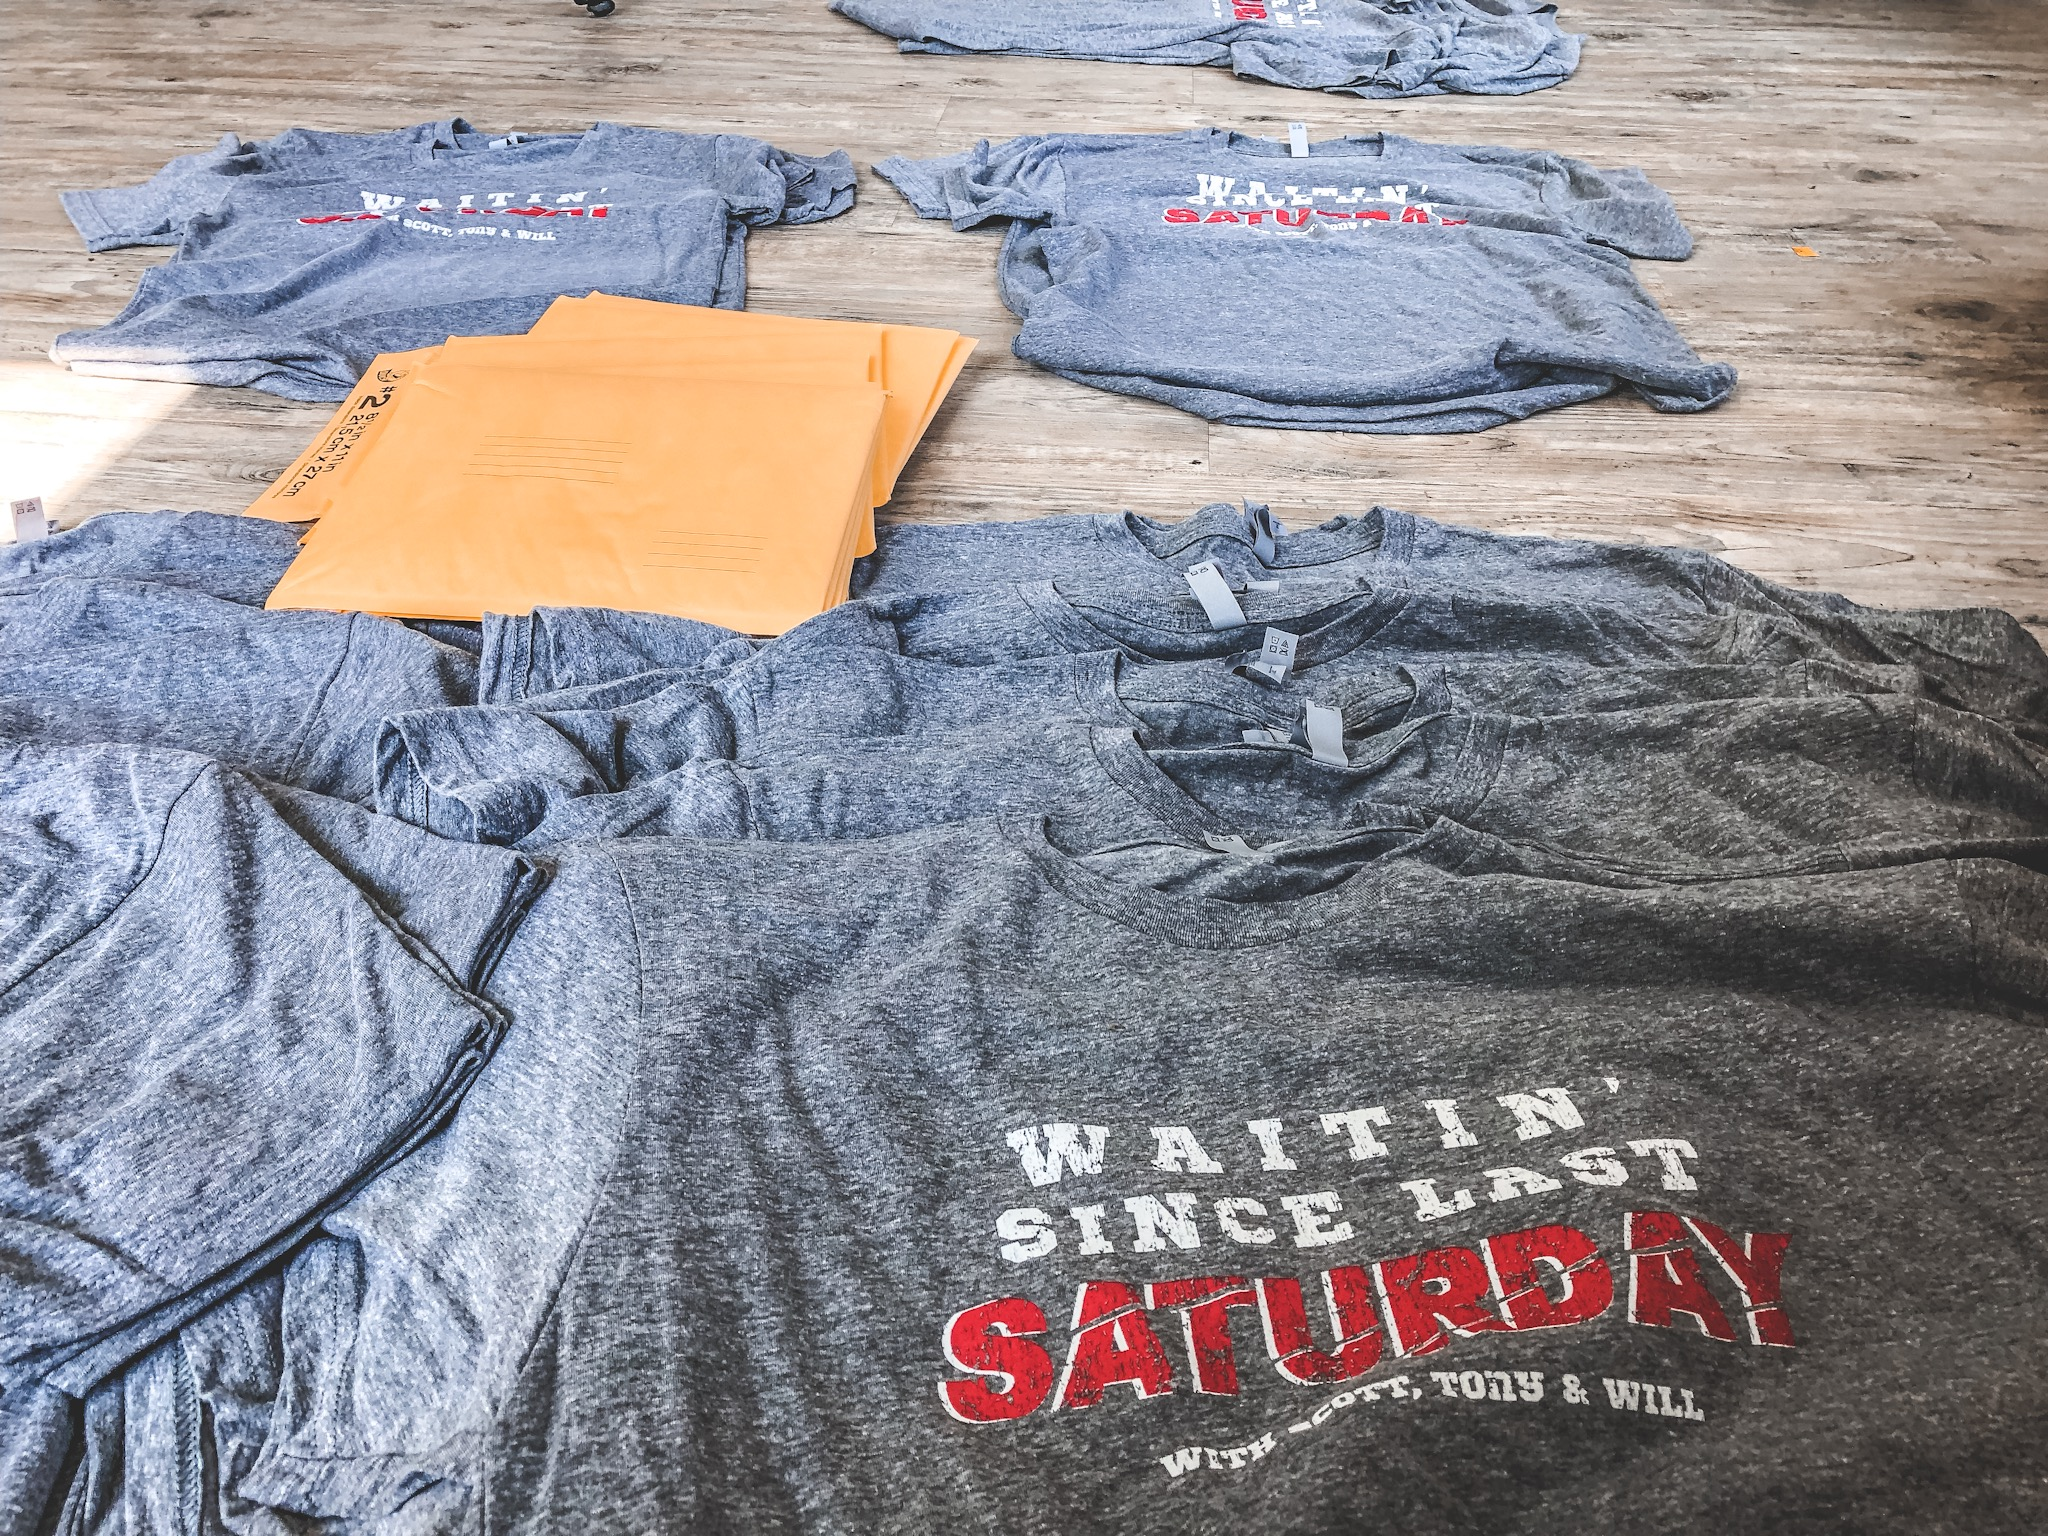 The Official WSLS Podcast T-shirts